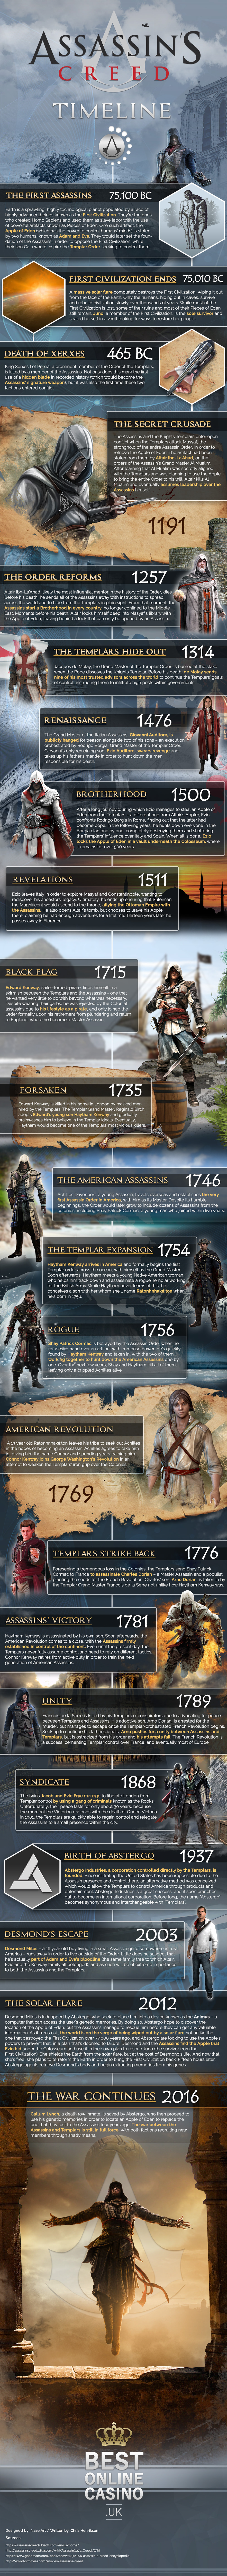 History of Assassin's Creed